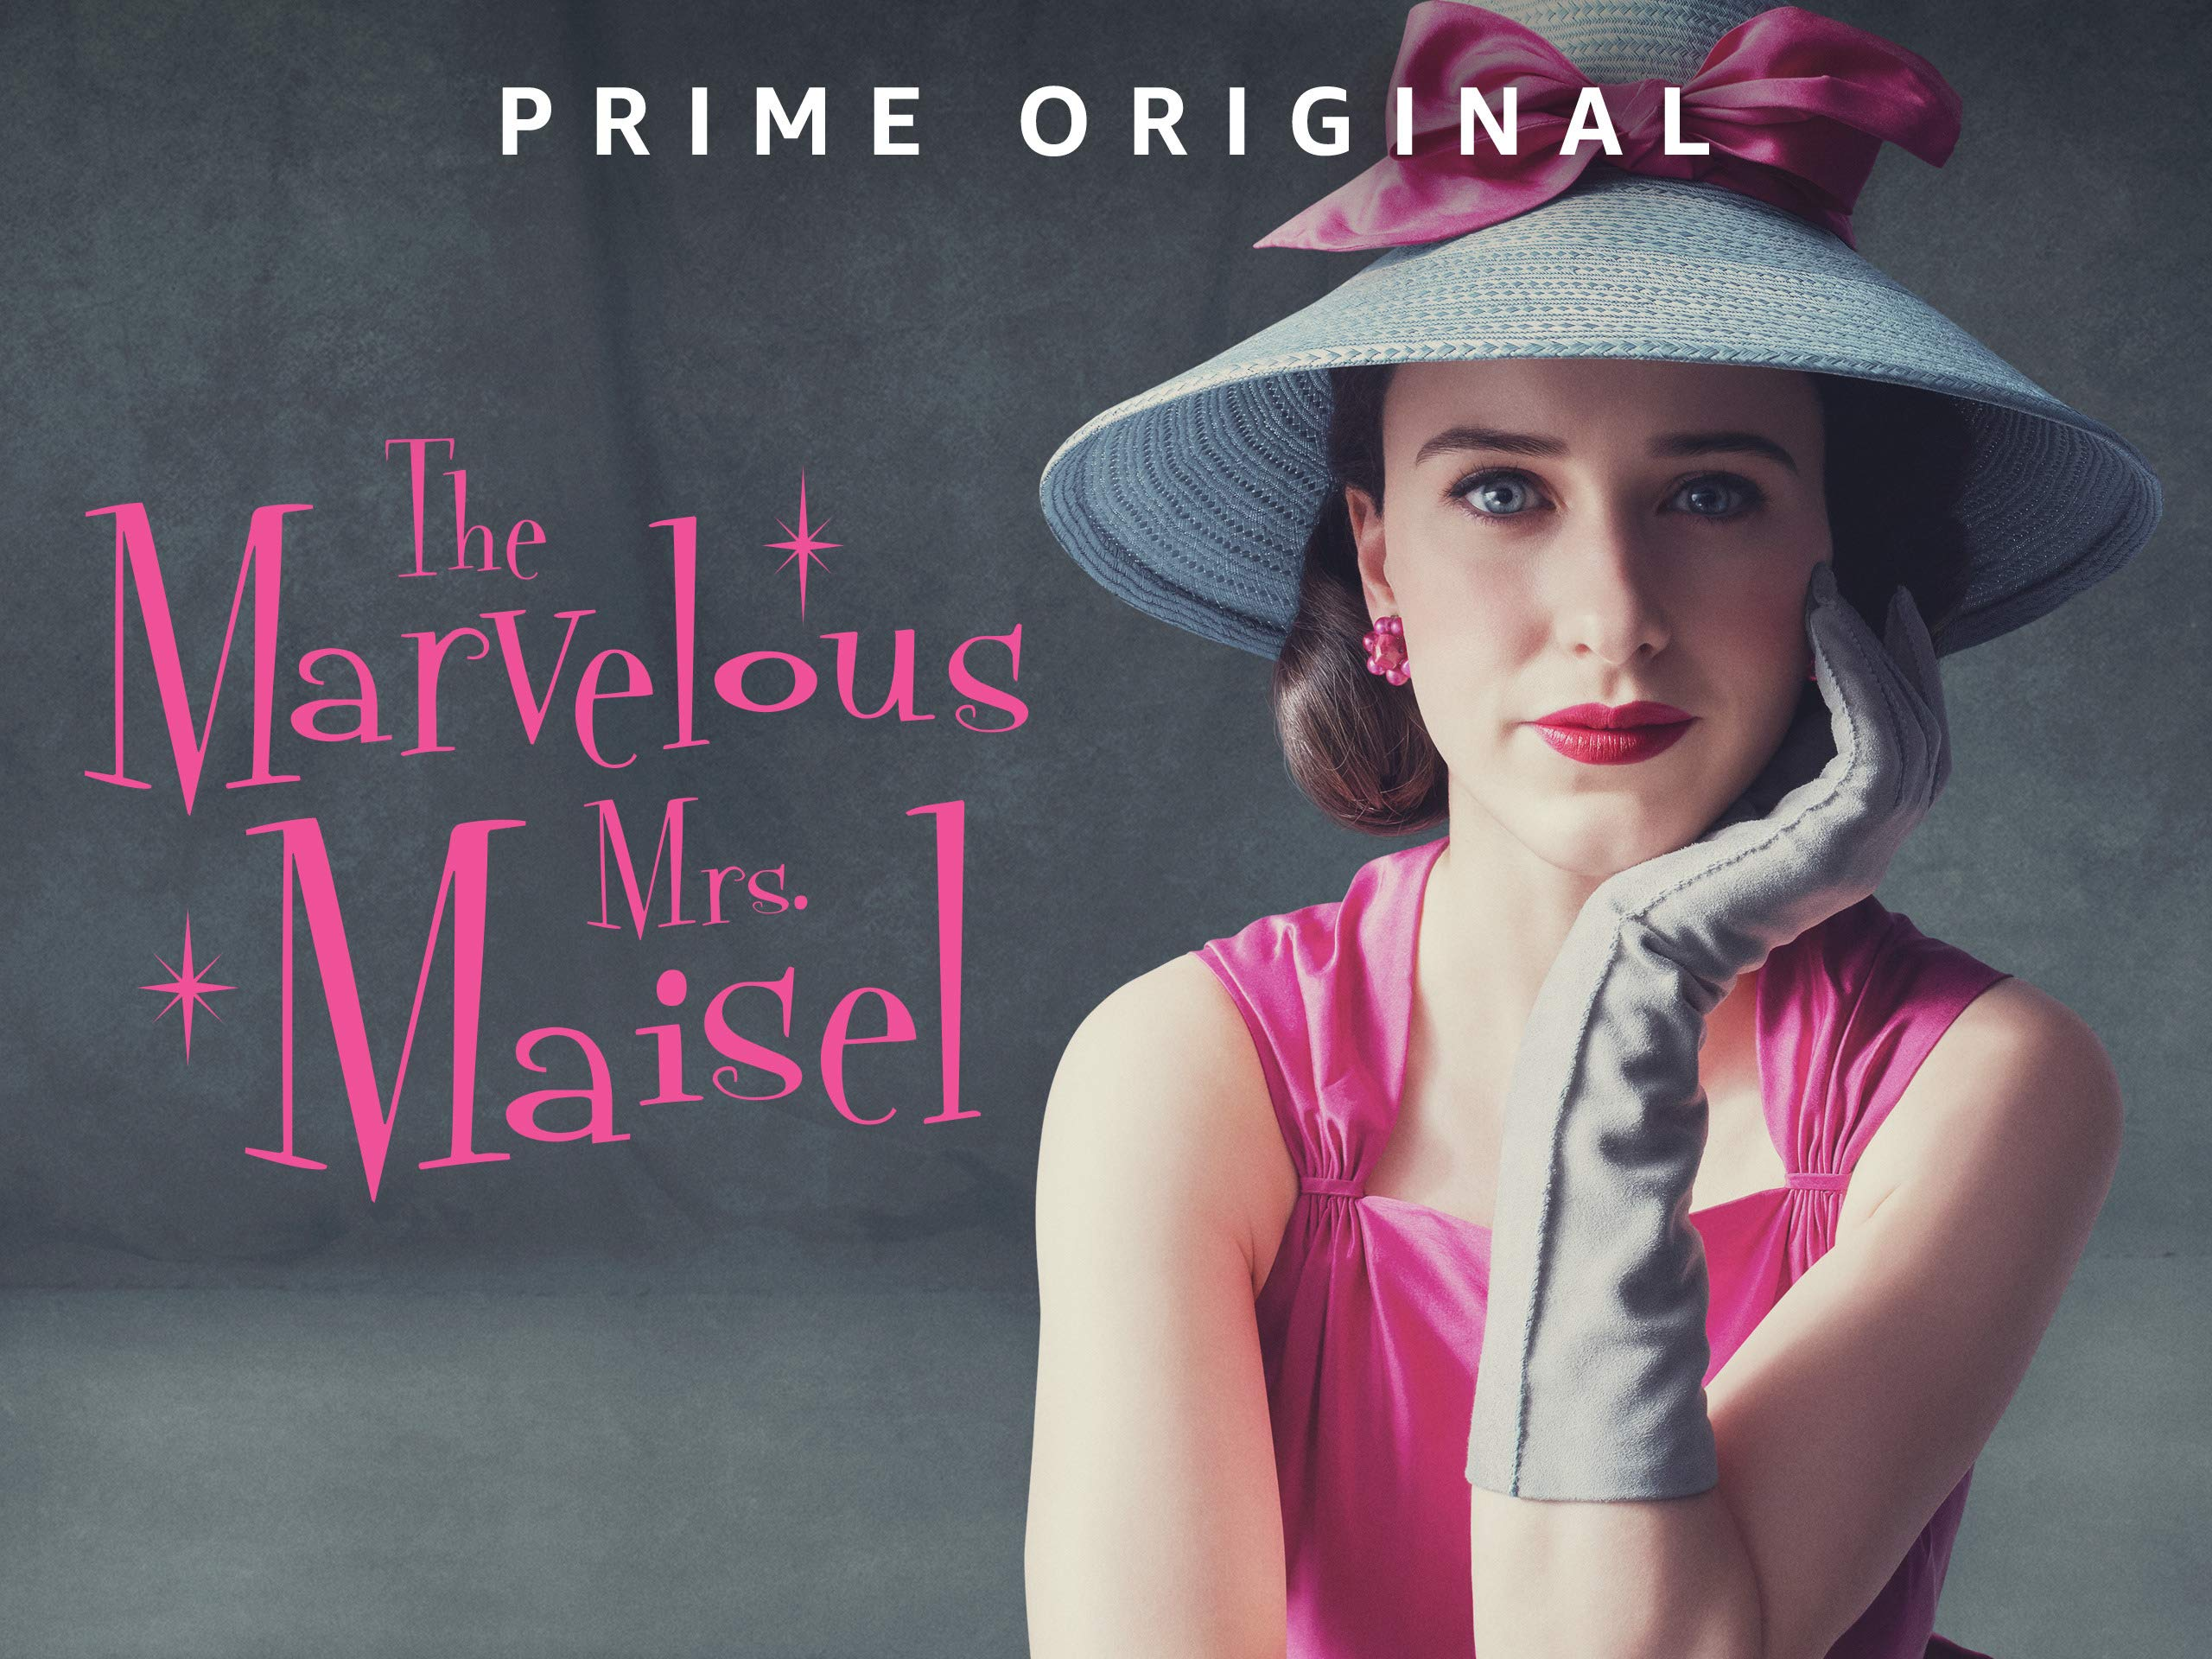 Marvelous Mrs. Maisel primed on Link activation Roku